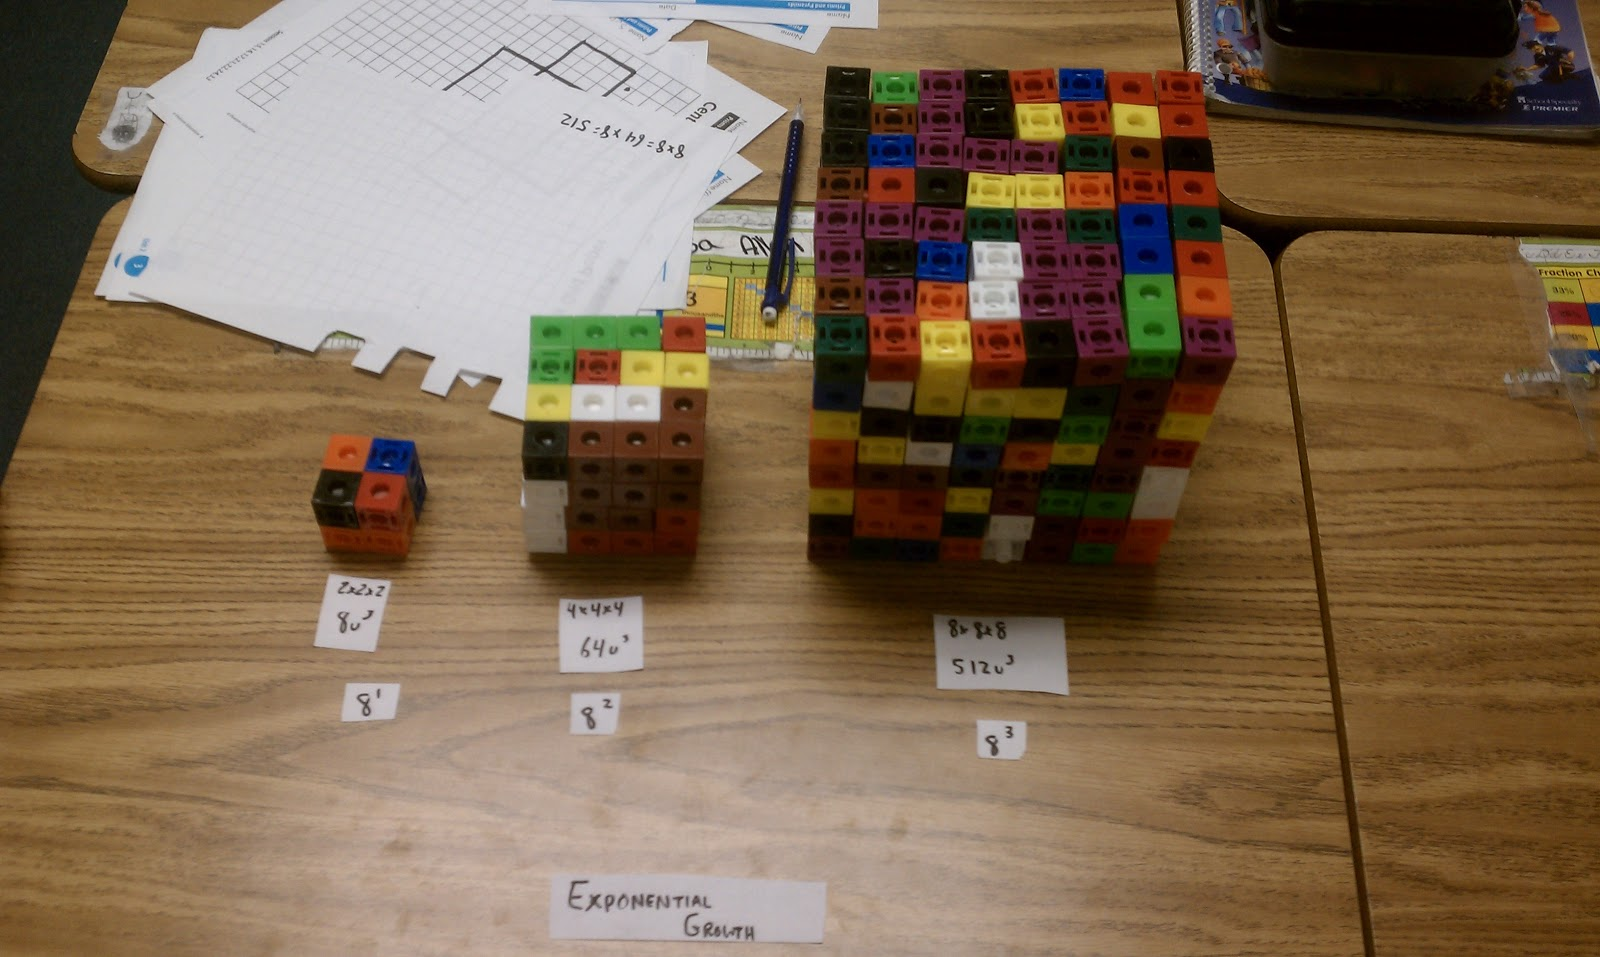 Bus L Teacher Resources 5th Grade Math Unit Area Perimeter Volume Of Prisms And Pyramids